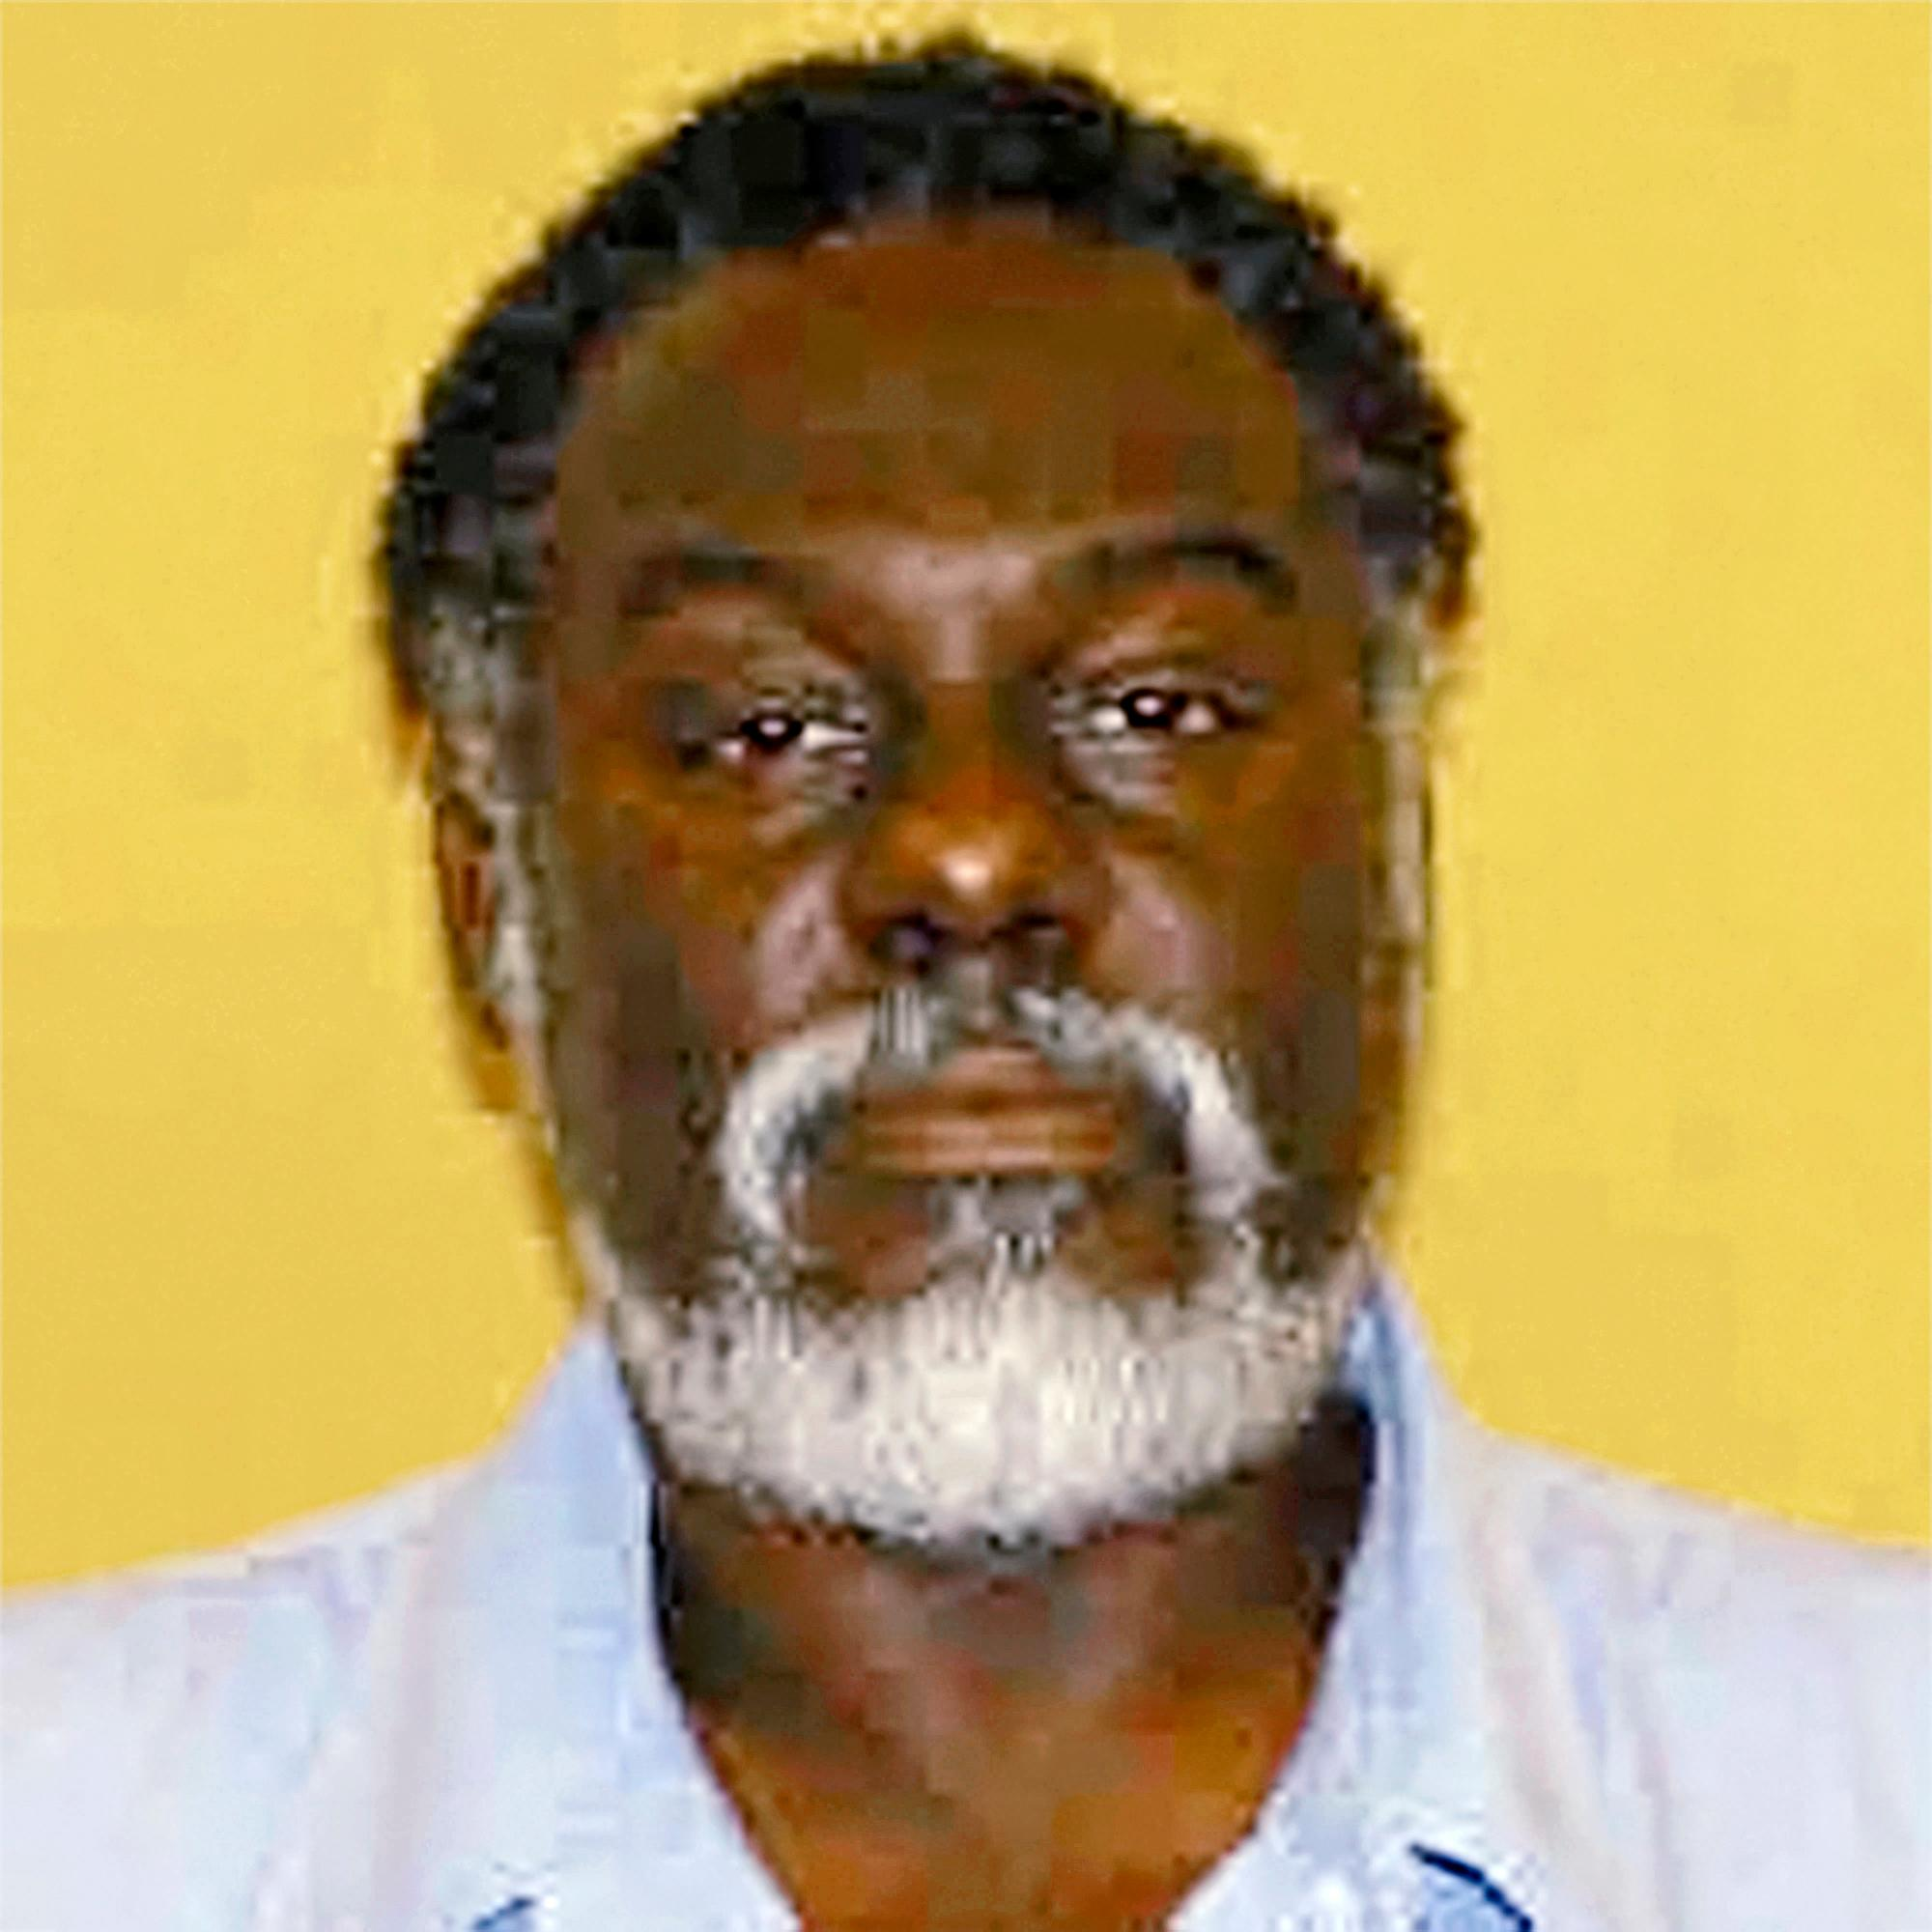 This undated, file photo provided by the Ohio Department of Rehabilitation and Correction shows Nathaniel Cook. Cook, one of two brothers who admitted killing a 12-year-old girl during a string of murders that terrorized an Ohio city in the early 1980s, could be released from prison within months. A judge has set a hearing for Thursday, March 8, 2018, to begin determining whether Cook should be registered as a sex offender if he's released. (Ohio Department of Rehabilitation and Correction via AP)